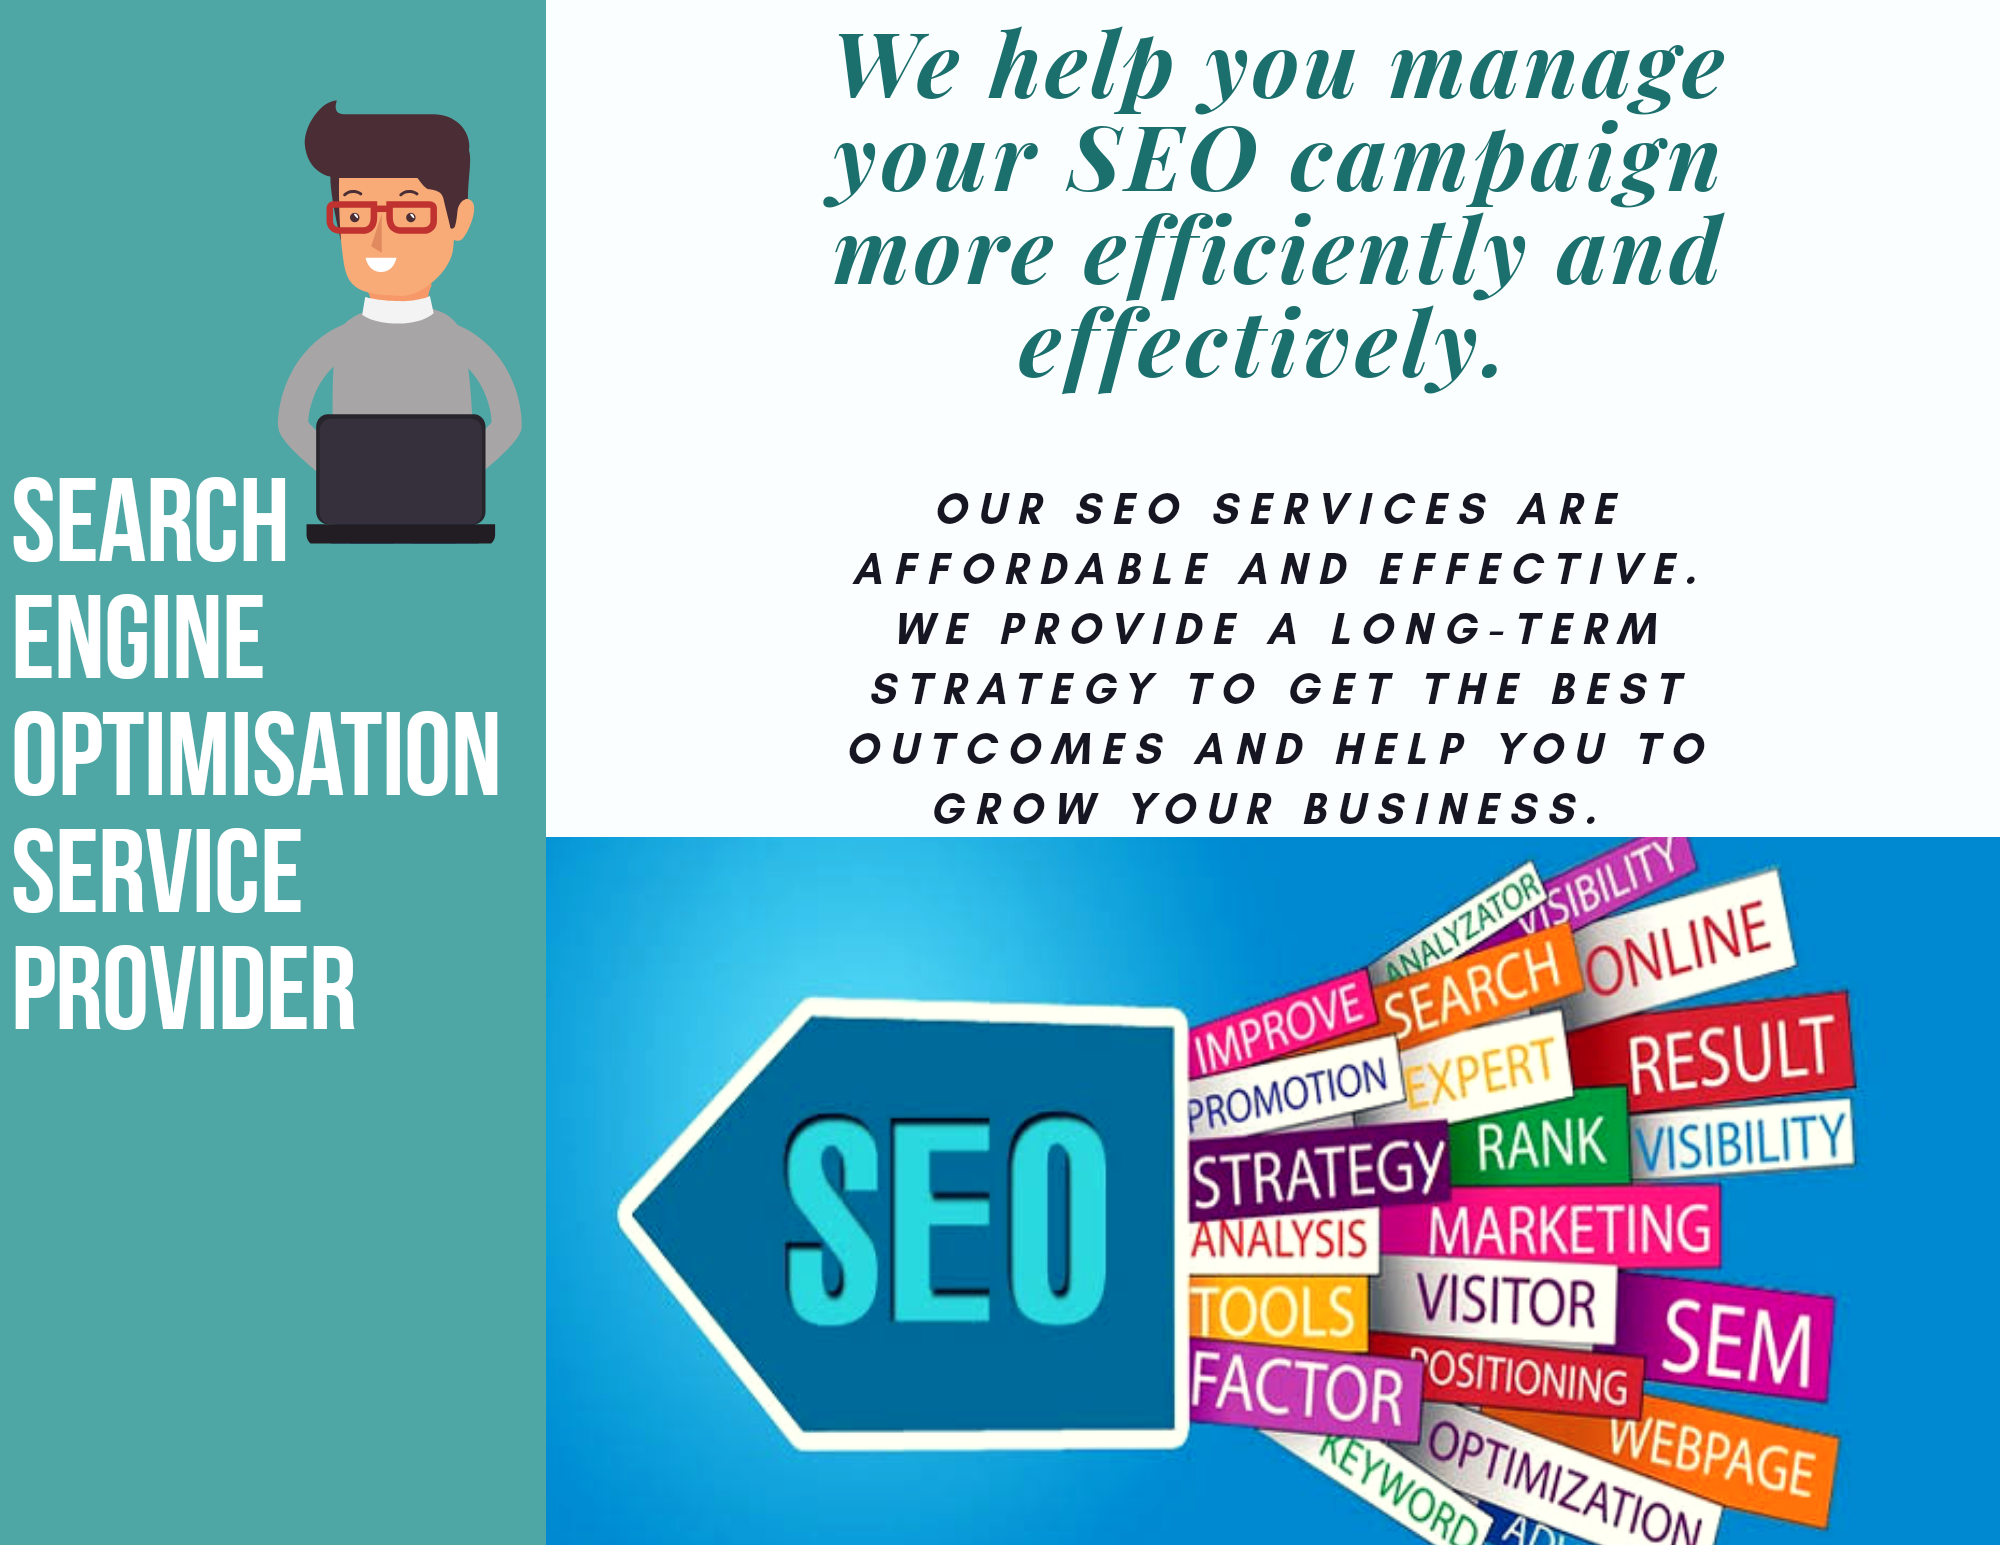 I will do SEO optimization of your website that will increase ranking